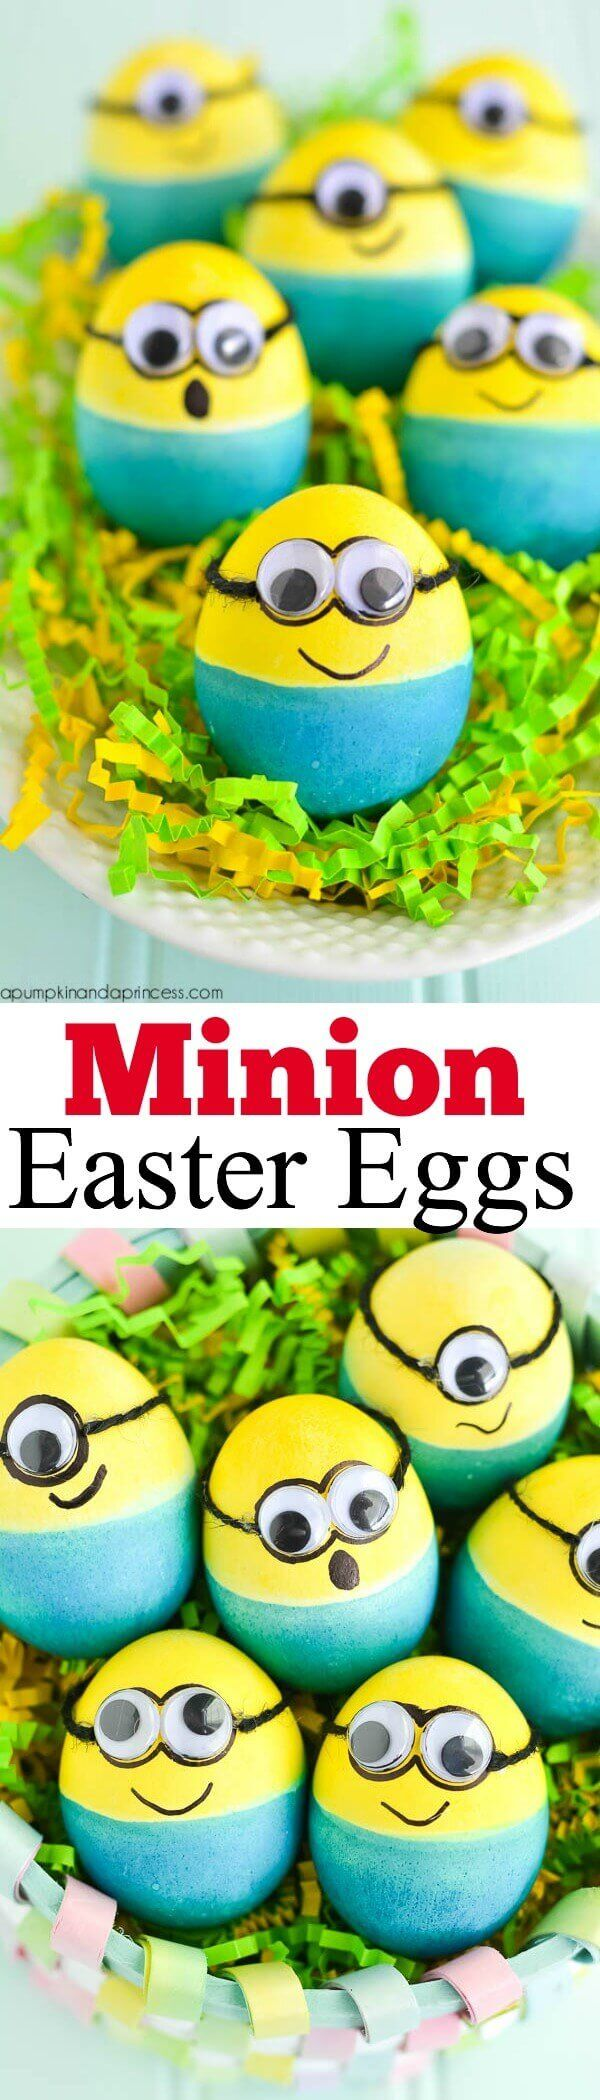 What could be cuter then traditional easter eggs minion easter minion easter eggs easter diy diy ideas easy diy kids crafts minion minions easter crafts easter craft easter eggs crafts for kids easter gifts egg dying negle Image collections